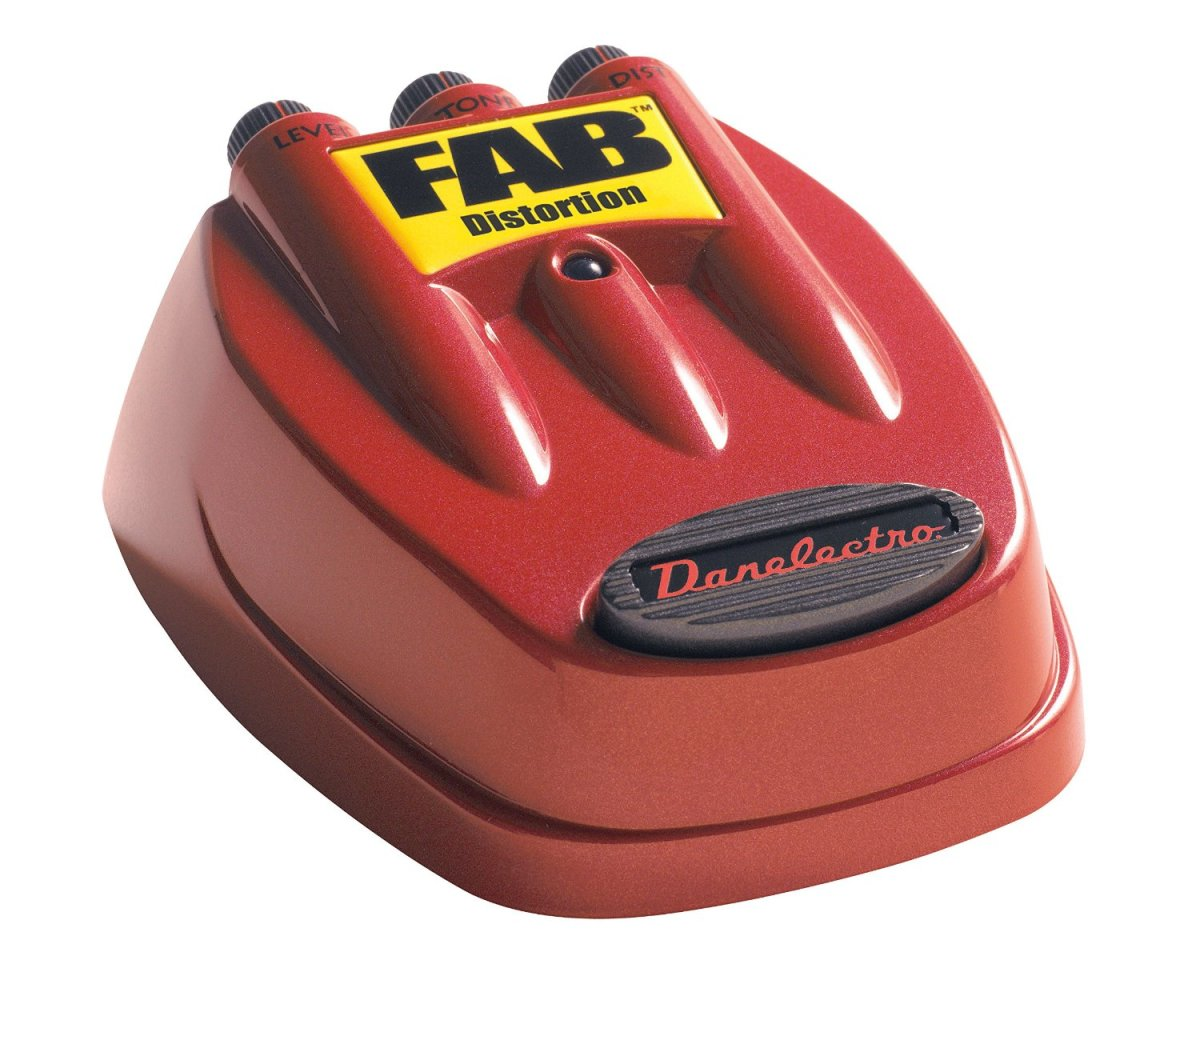 The Danelectro D-1 is a very distinctive looking pedal.